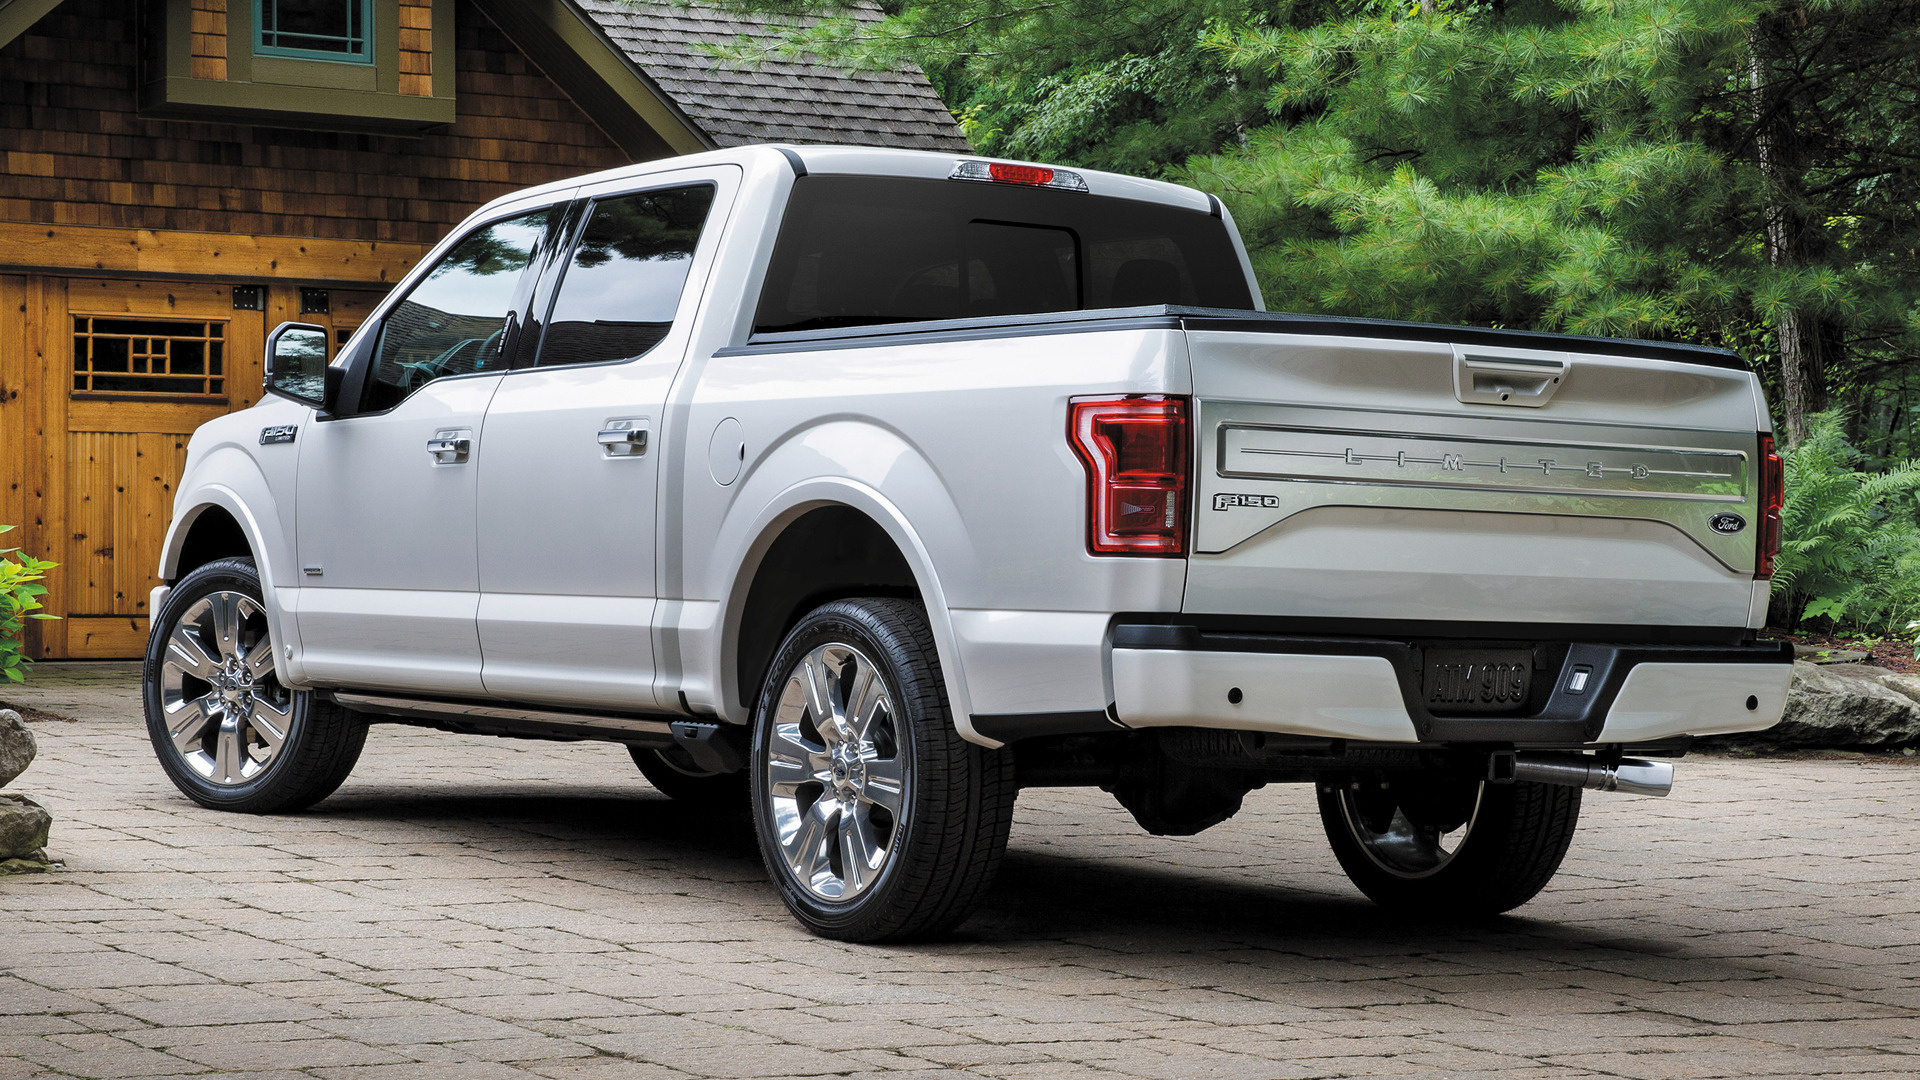 Ford F 150 Limited SuperCrew 2016 Wallpapers and HD Images 1920x1080